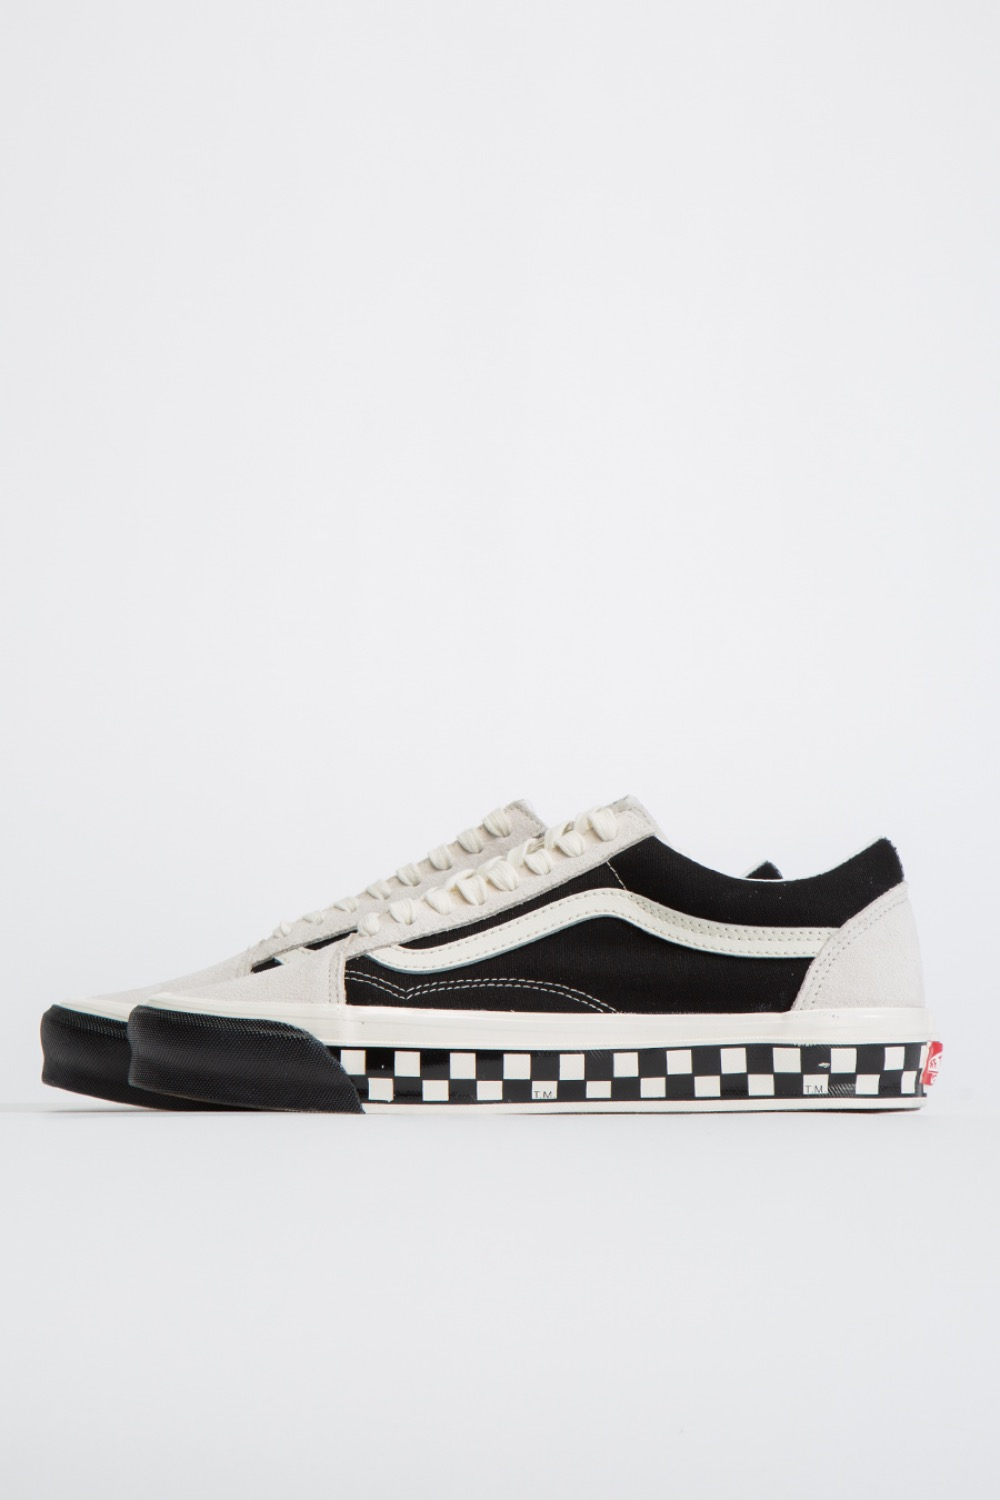 OG OLD SKOOL LX(BUMPER CARS)MARSHMALLOW/BLACK